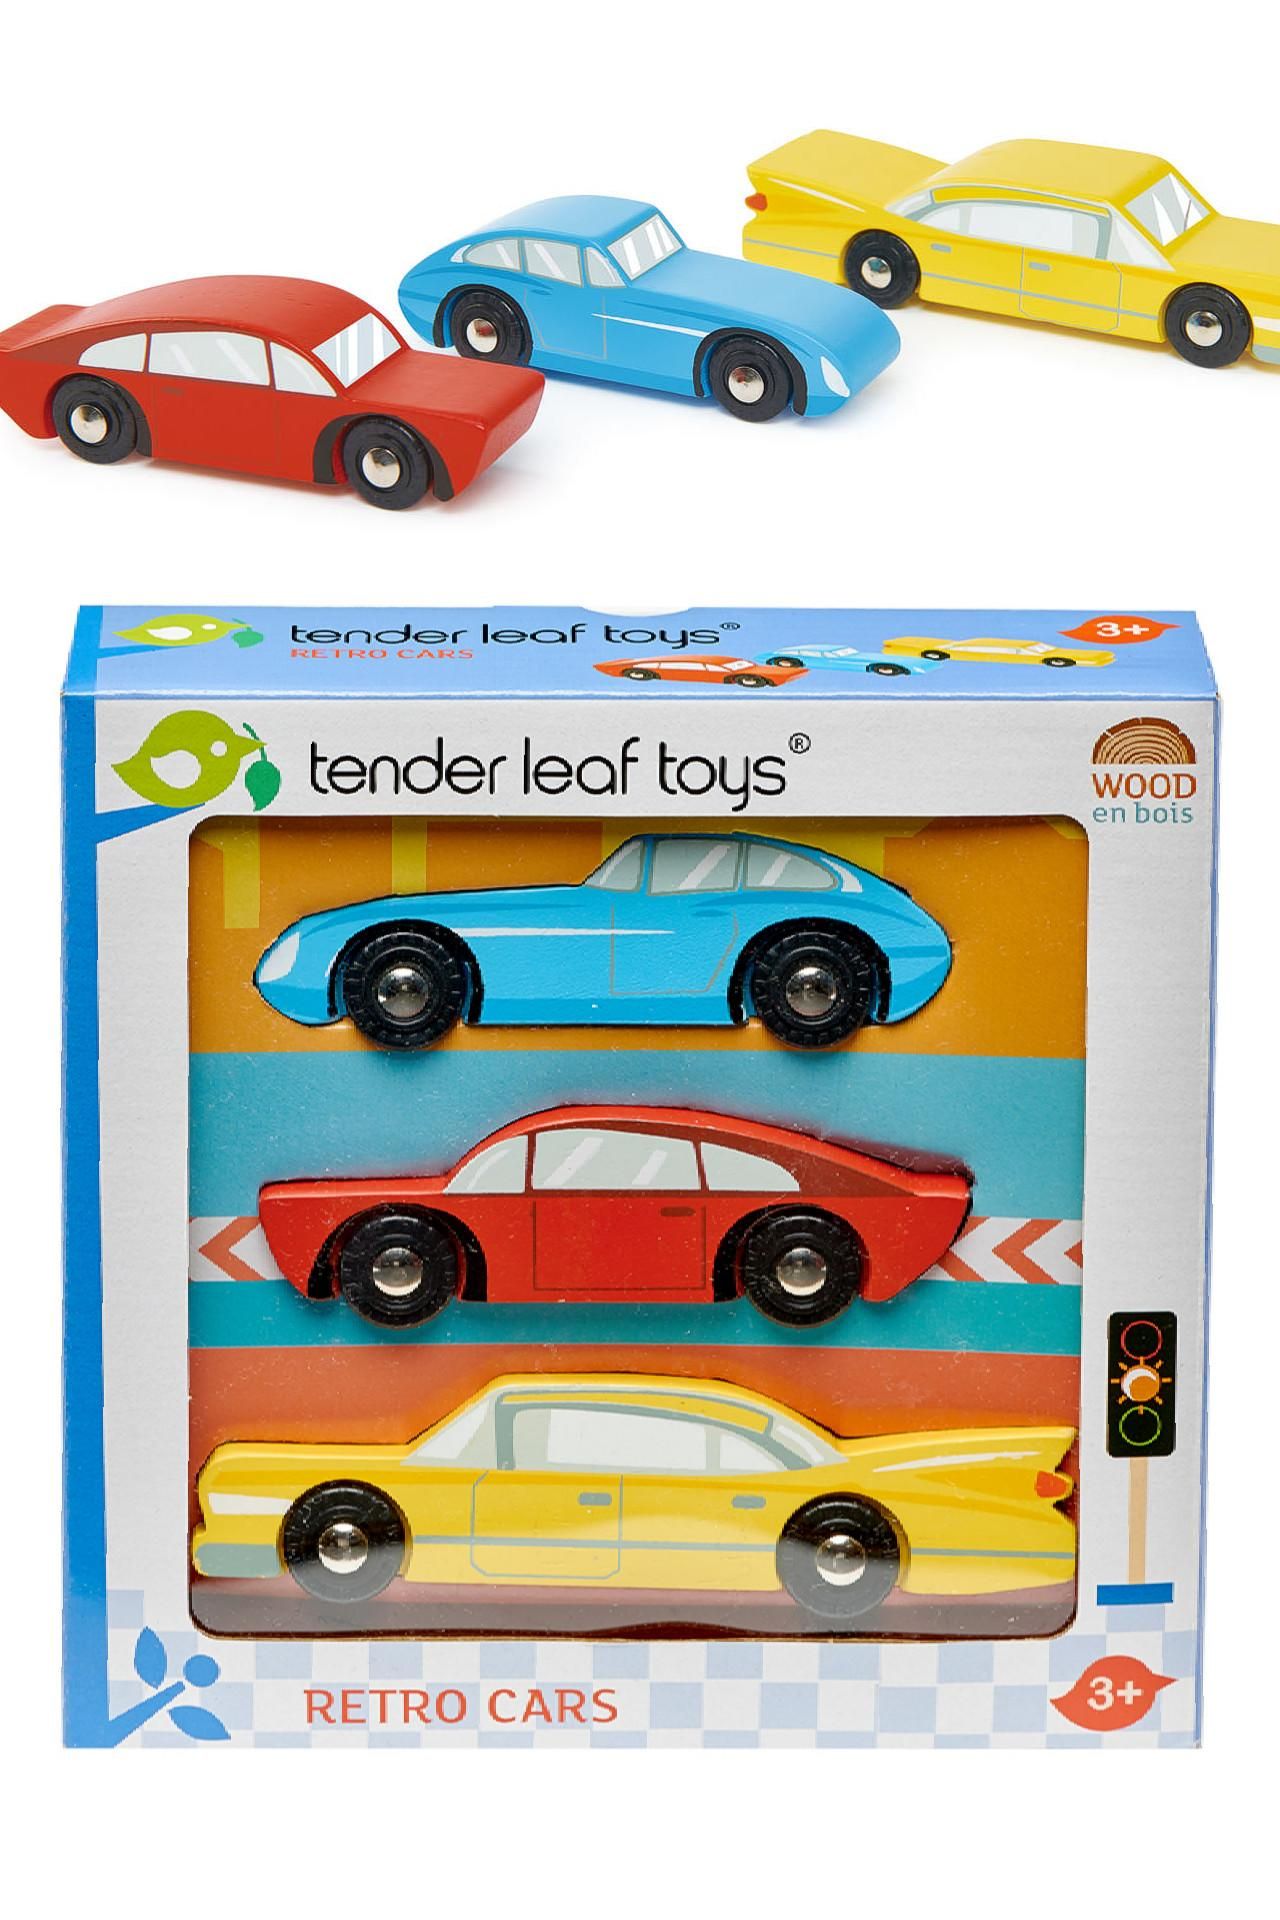 New Stylish Wooden Retro Toy Cars - Set of 3 in Red, Blue and Yellow